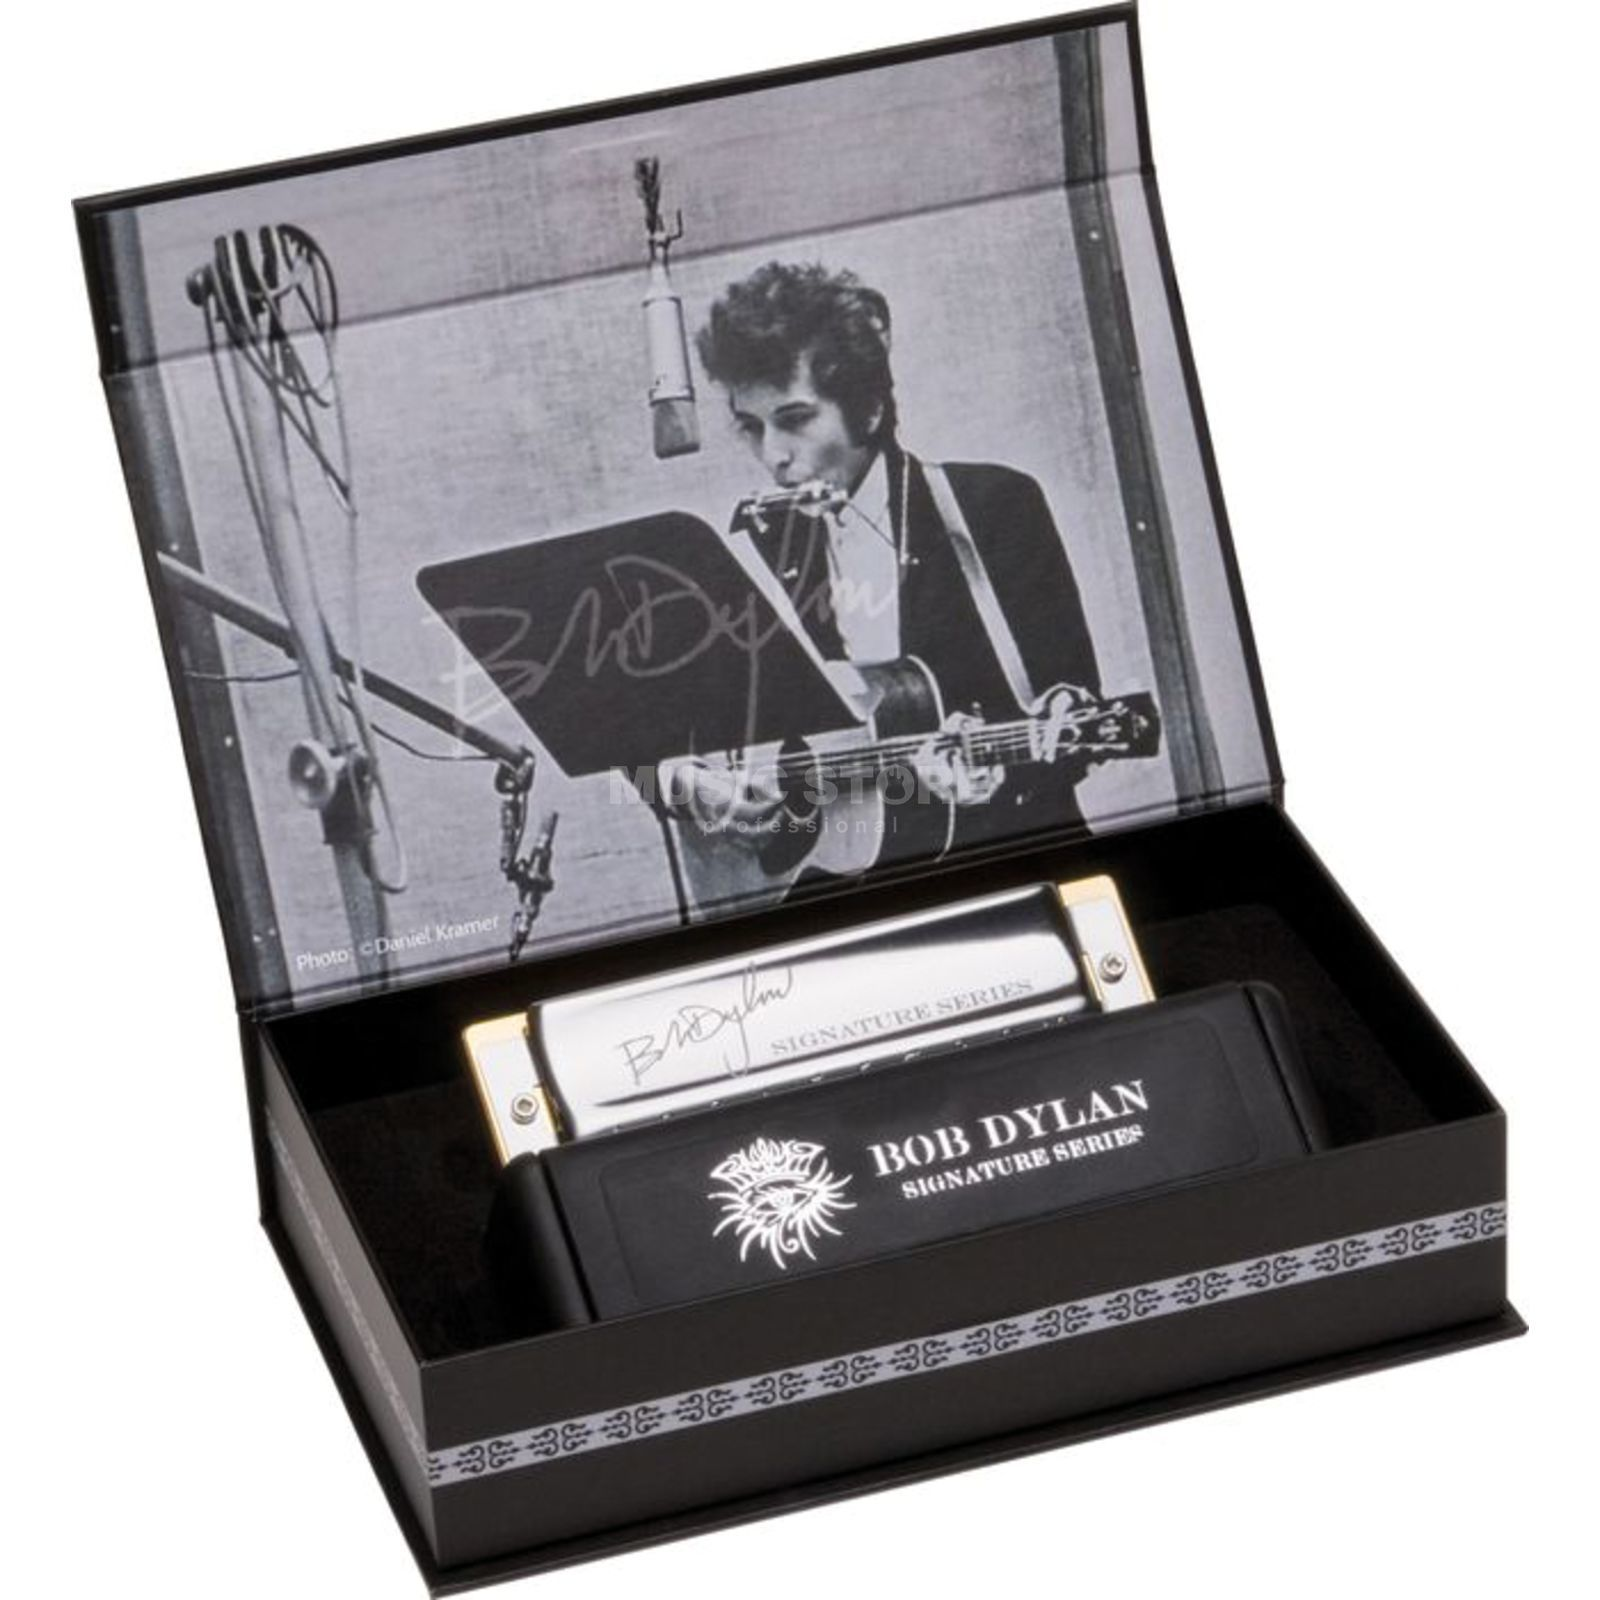 Hohner Bob Dylan Signature Harp C-Major Product Image